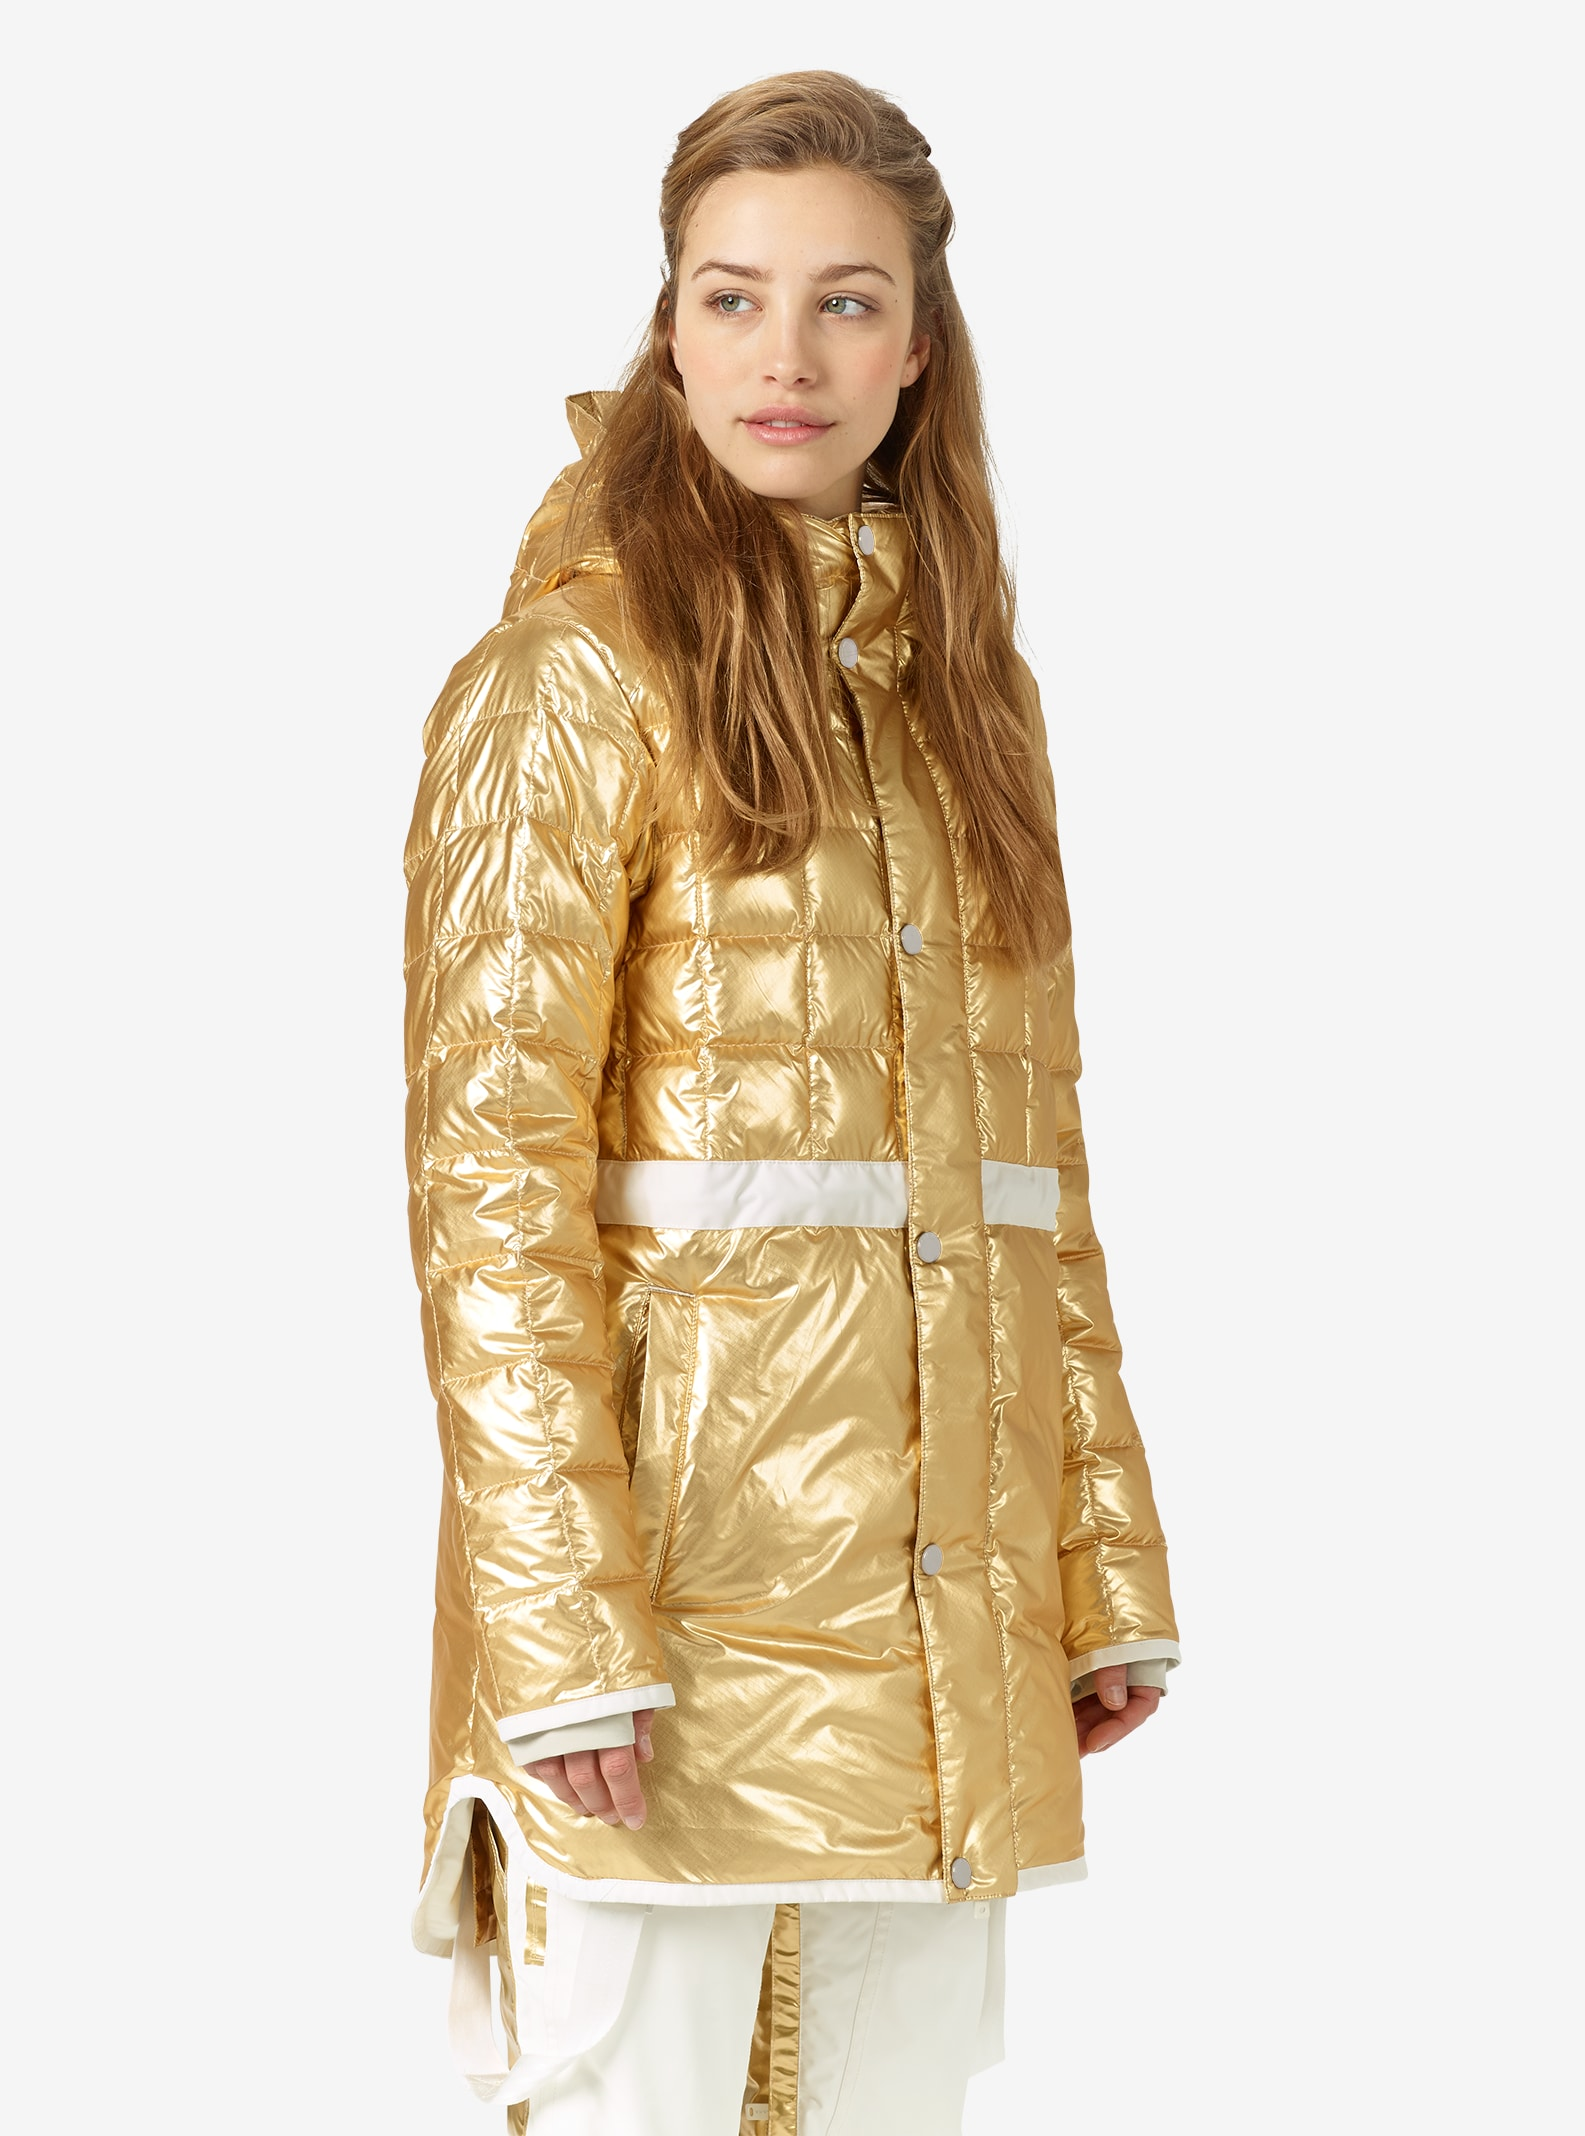 L.A.M.B. x Burton The Alice Insulator Jacket shown in Gold